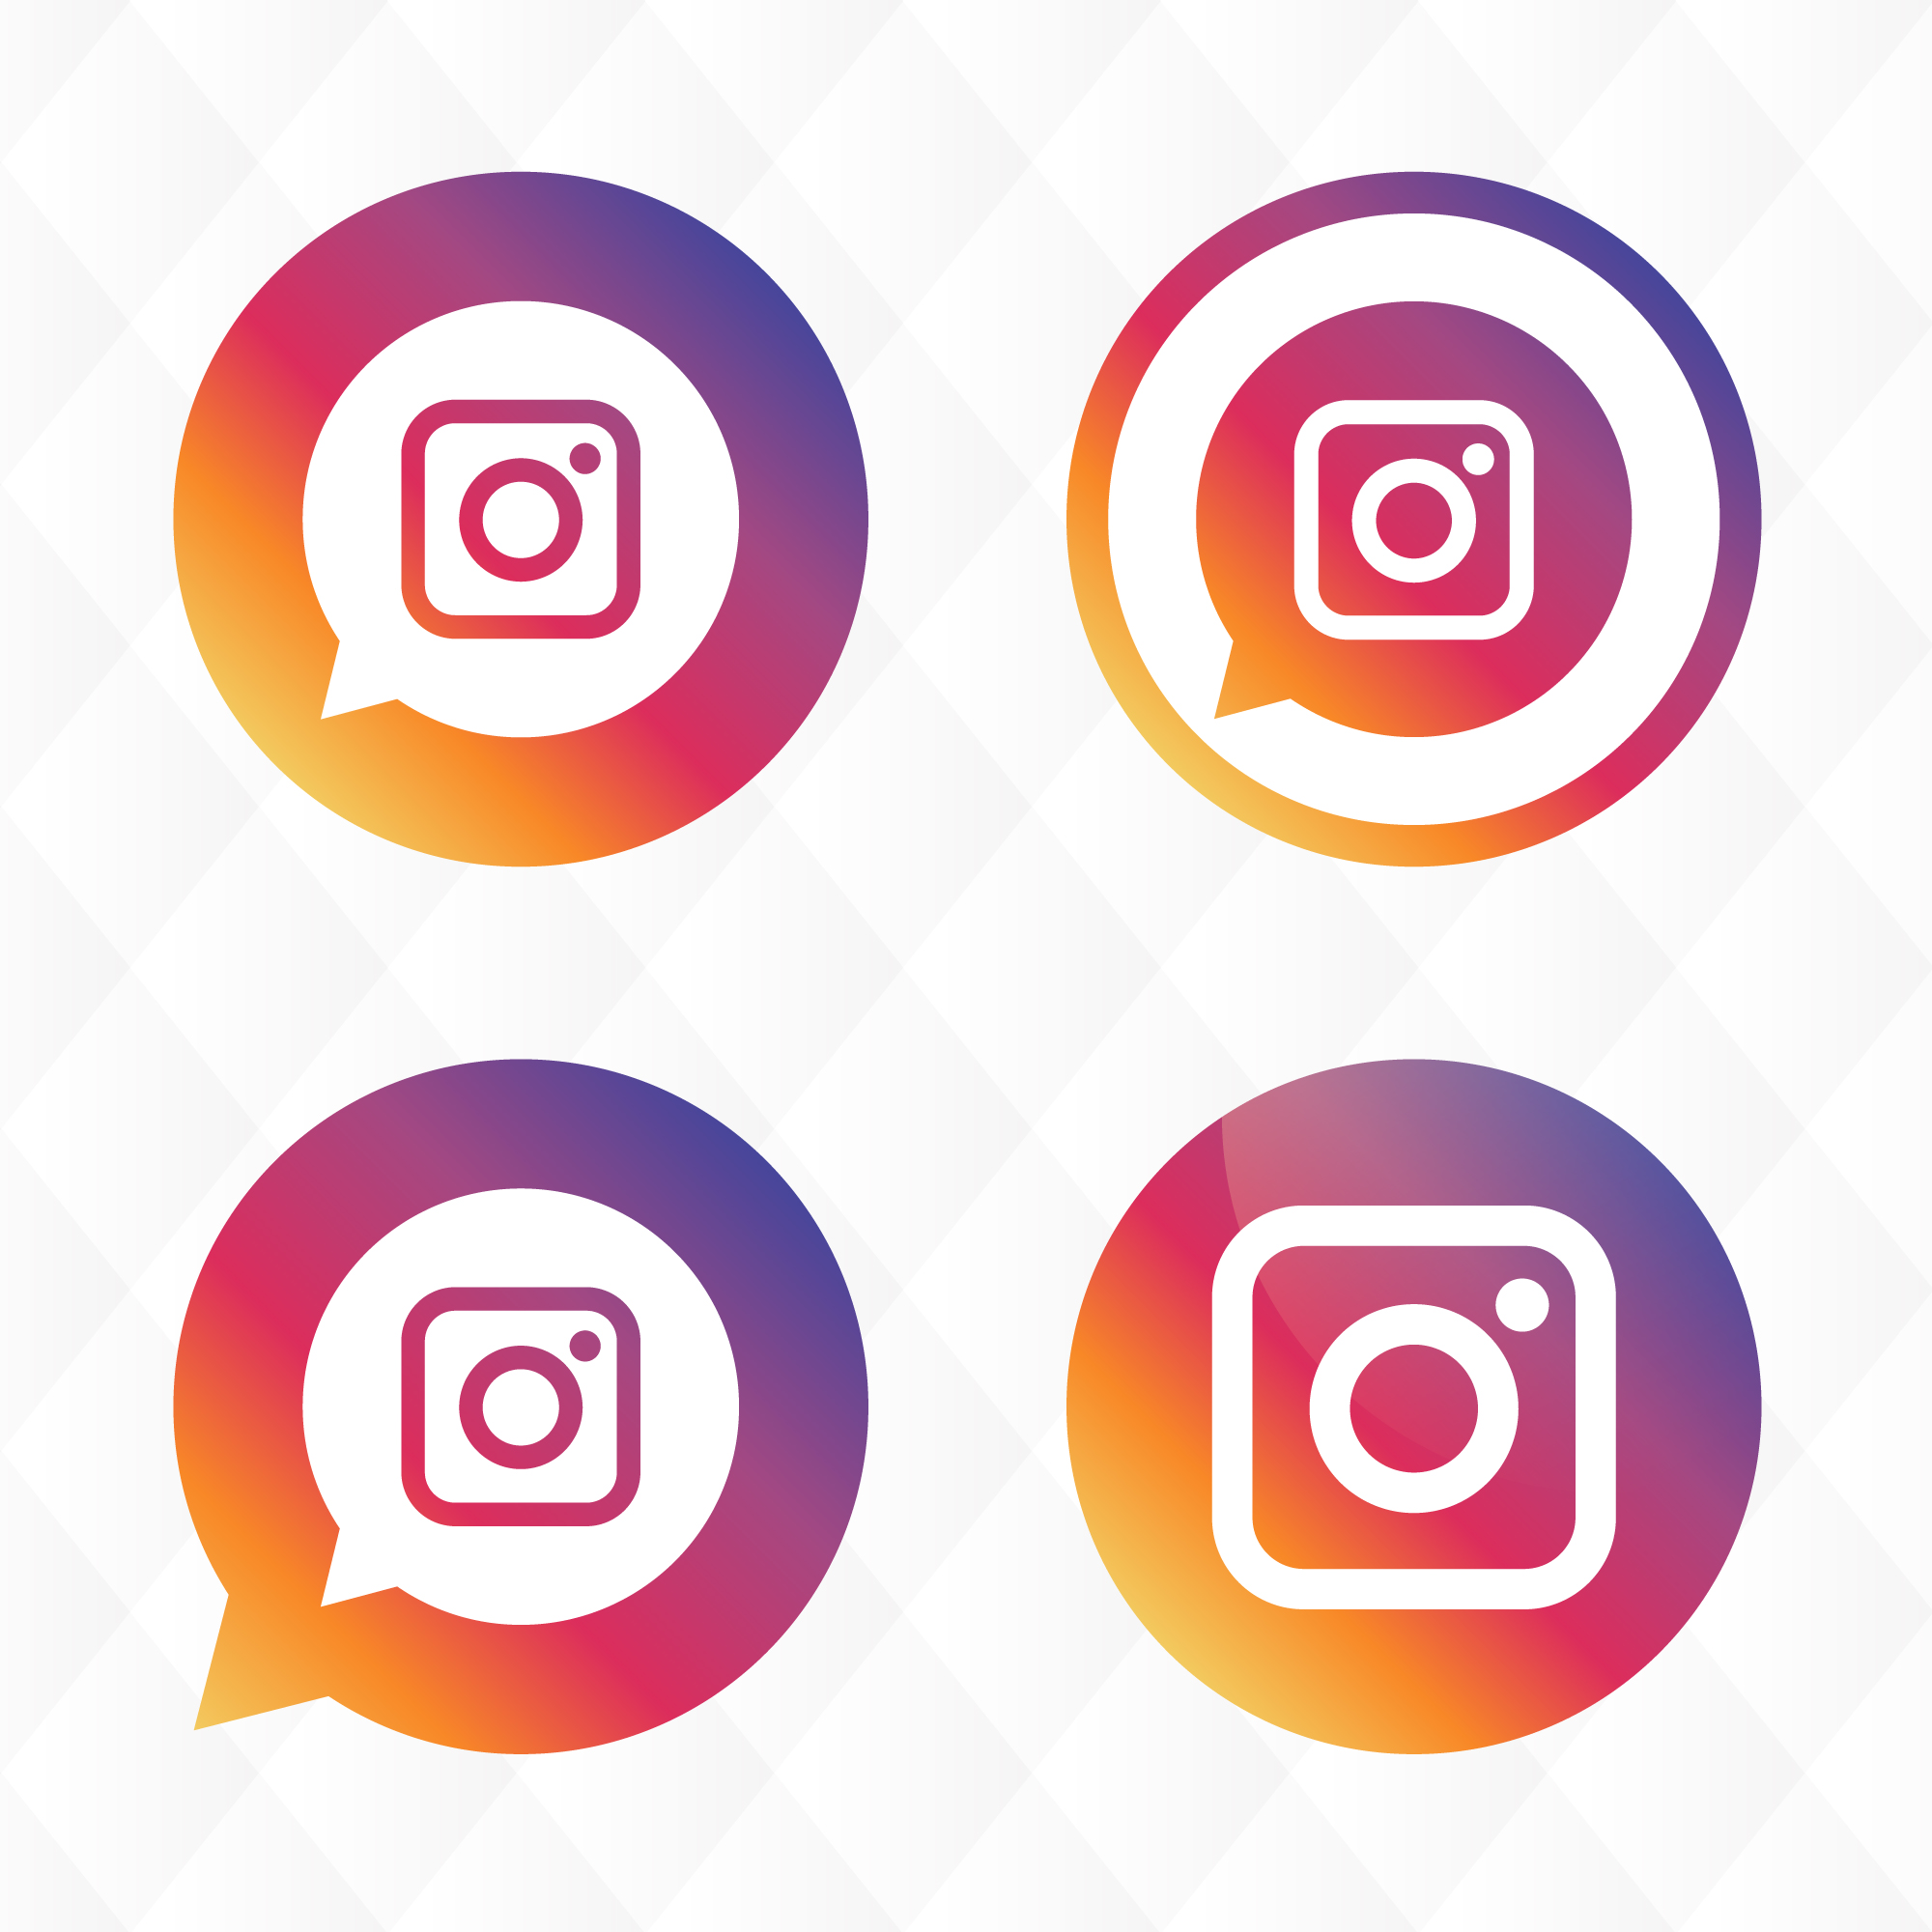 Instagram icona del design